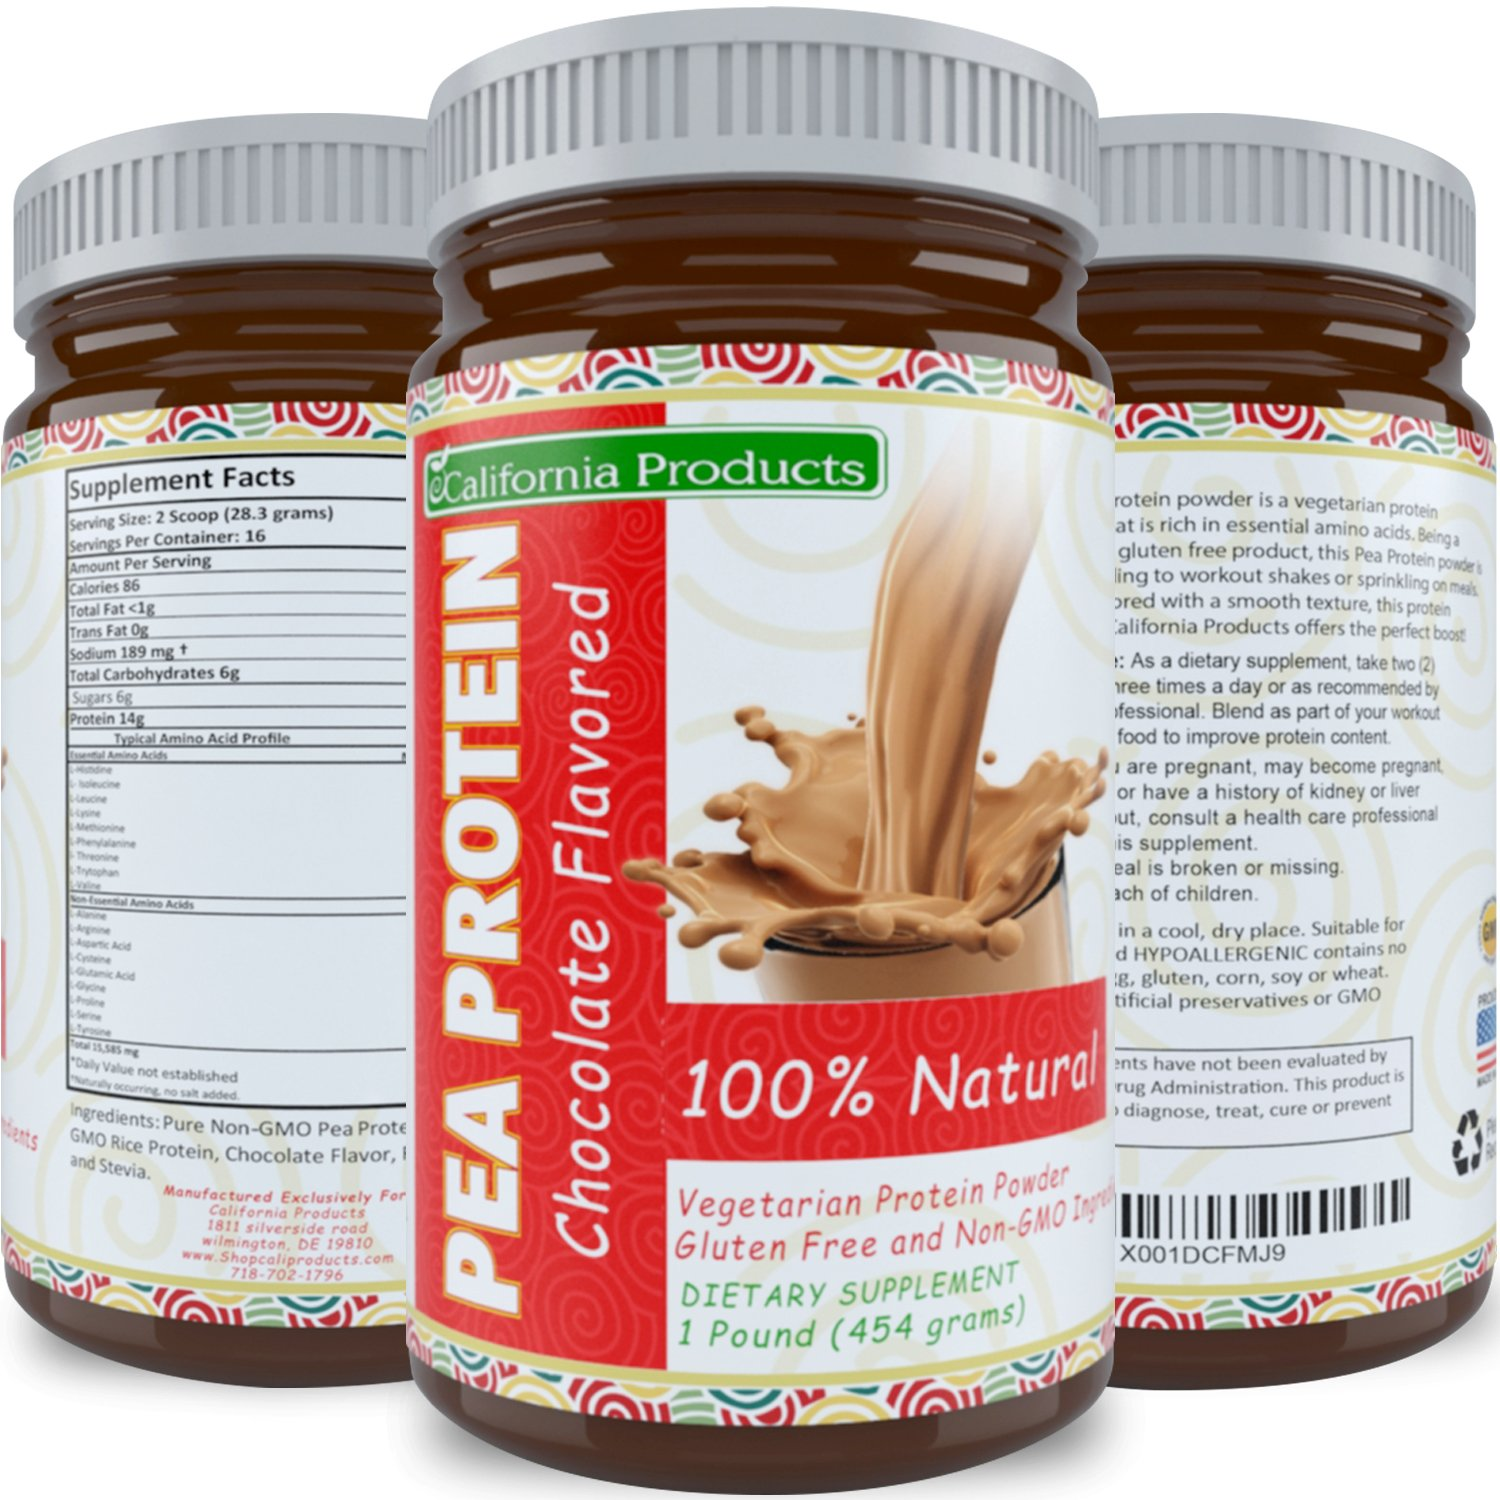 What Is The Best Protein Powder For Weightloss And Natural